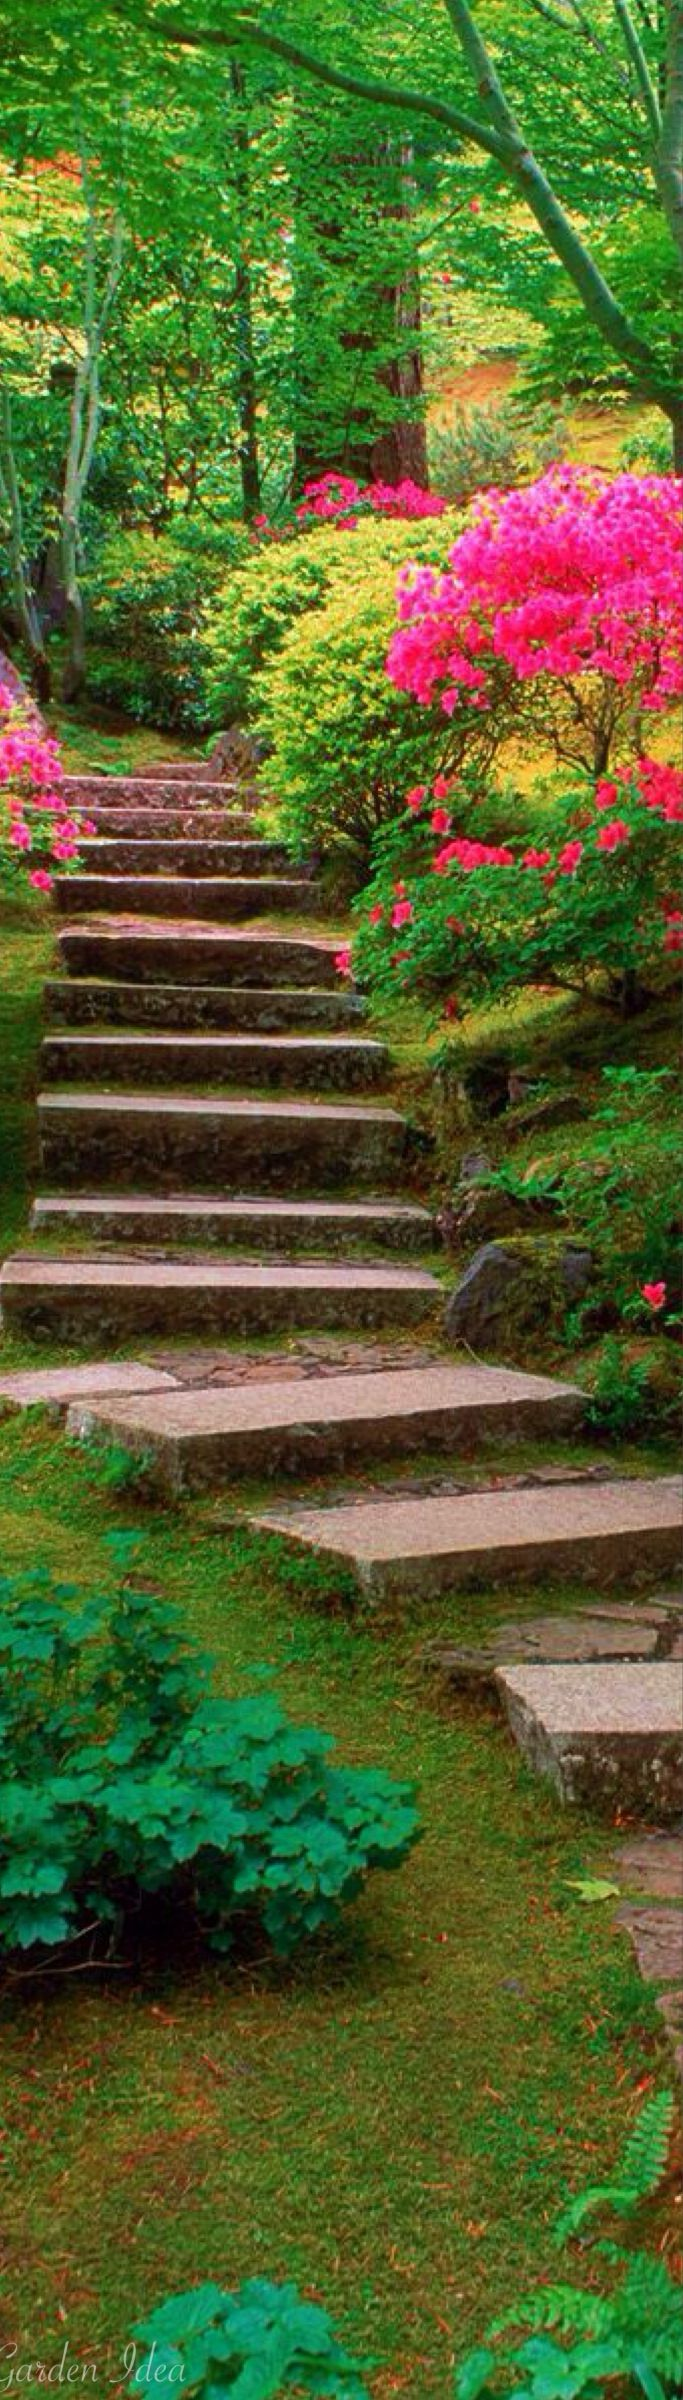 Not much more inviting than a stone staircase surrounded by pretty.